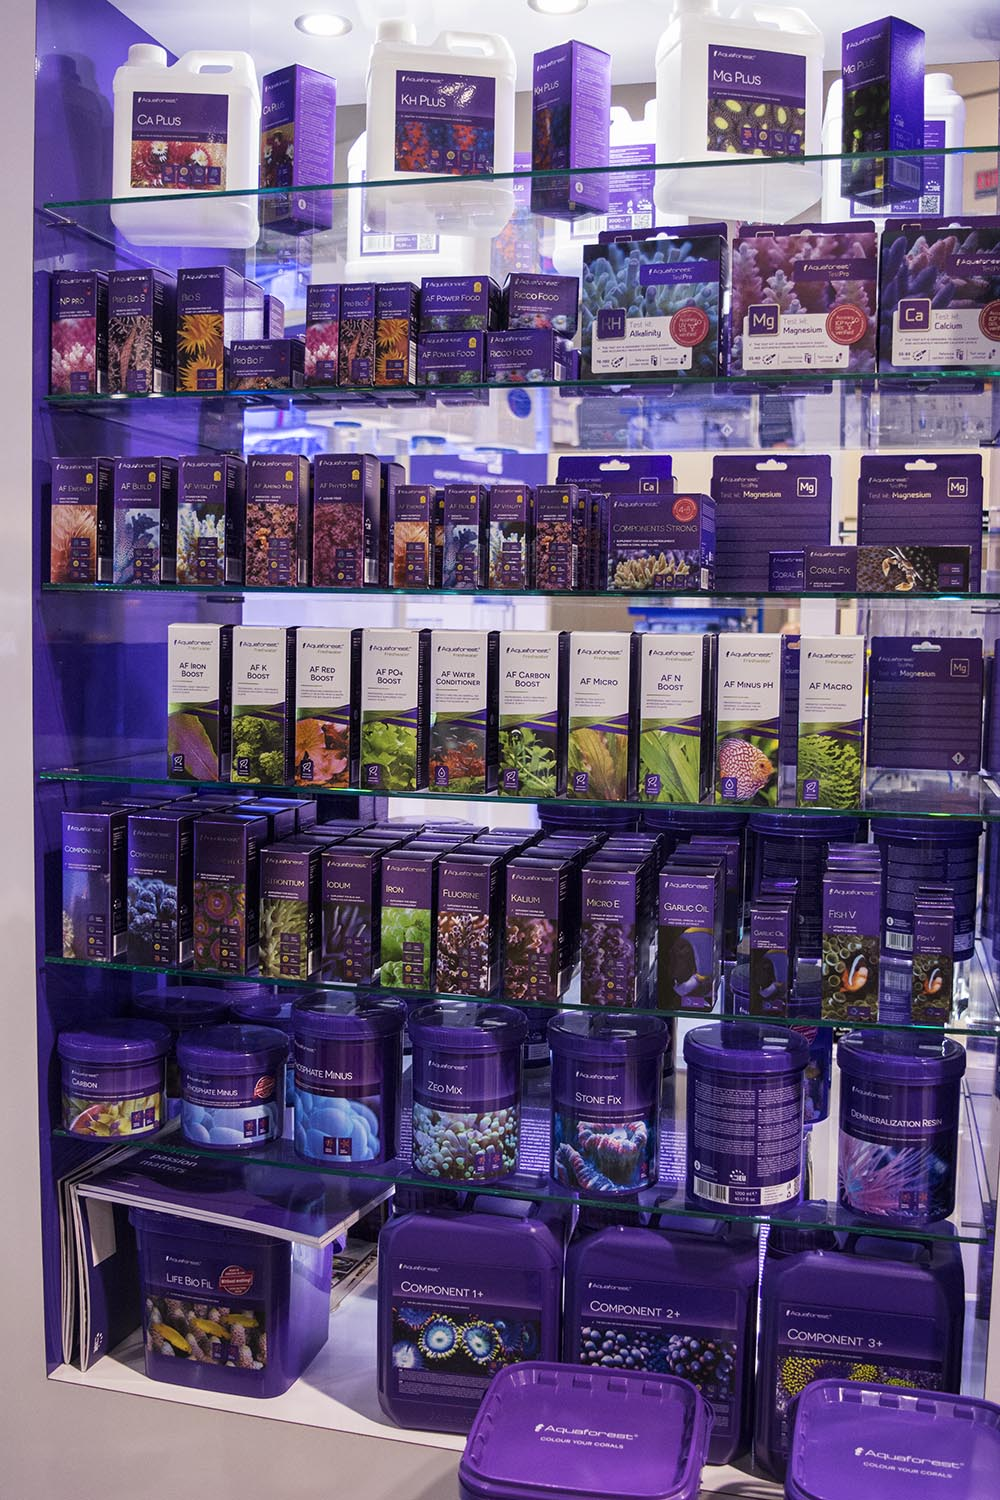 European aquarium product manufacturer Aquaforest continued their push into the US market with an expanded line of salts, supplements, and foods.